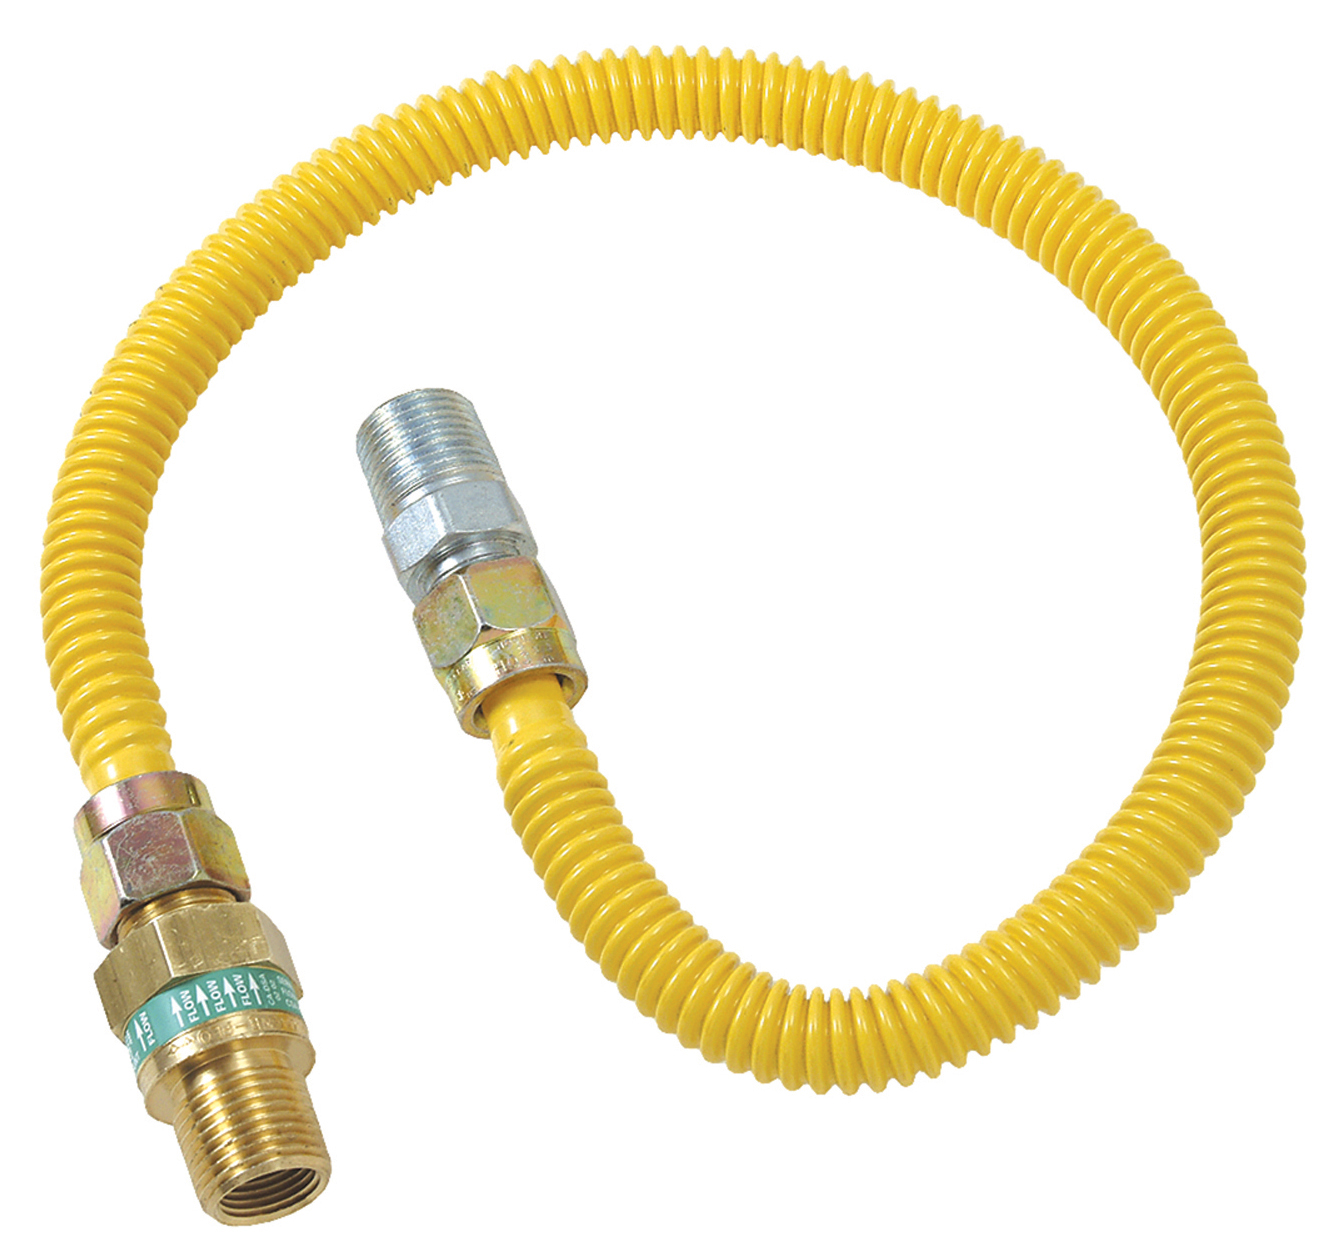 BrassCraft CSSL45E-18 P 3//8-Inch Outer Diameter Safety Plus Gas Appliance Connector with Excess Flow Valve